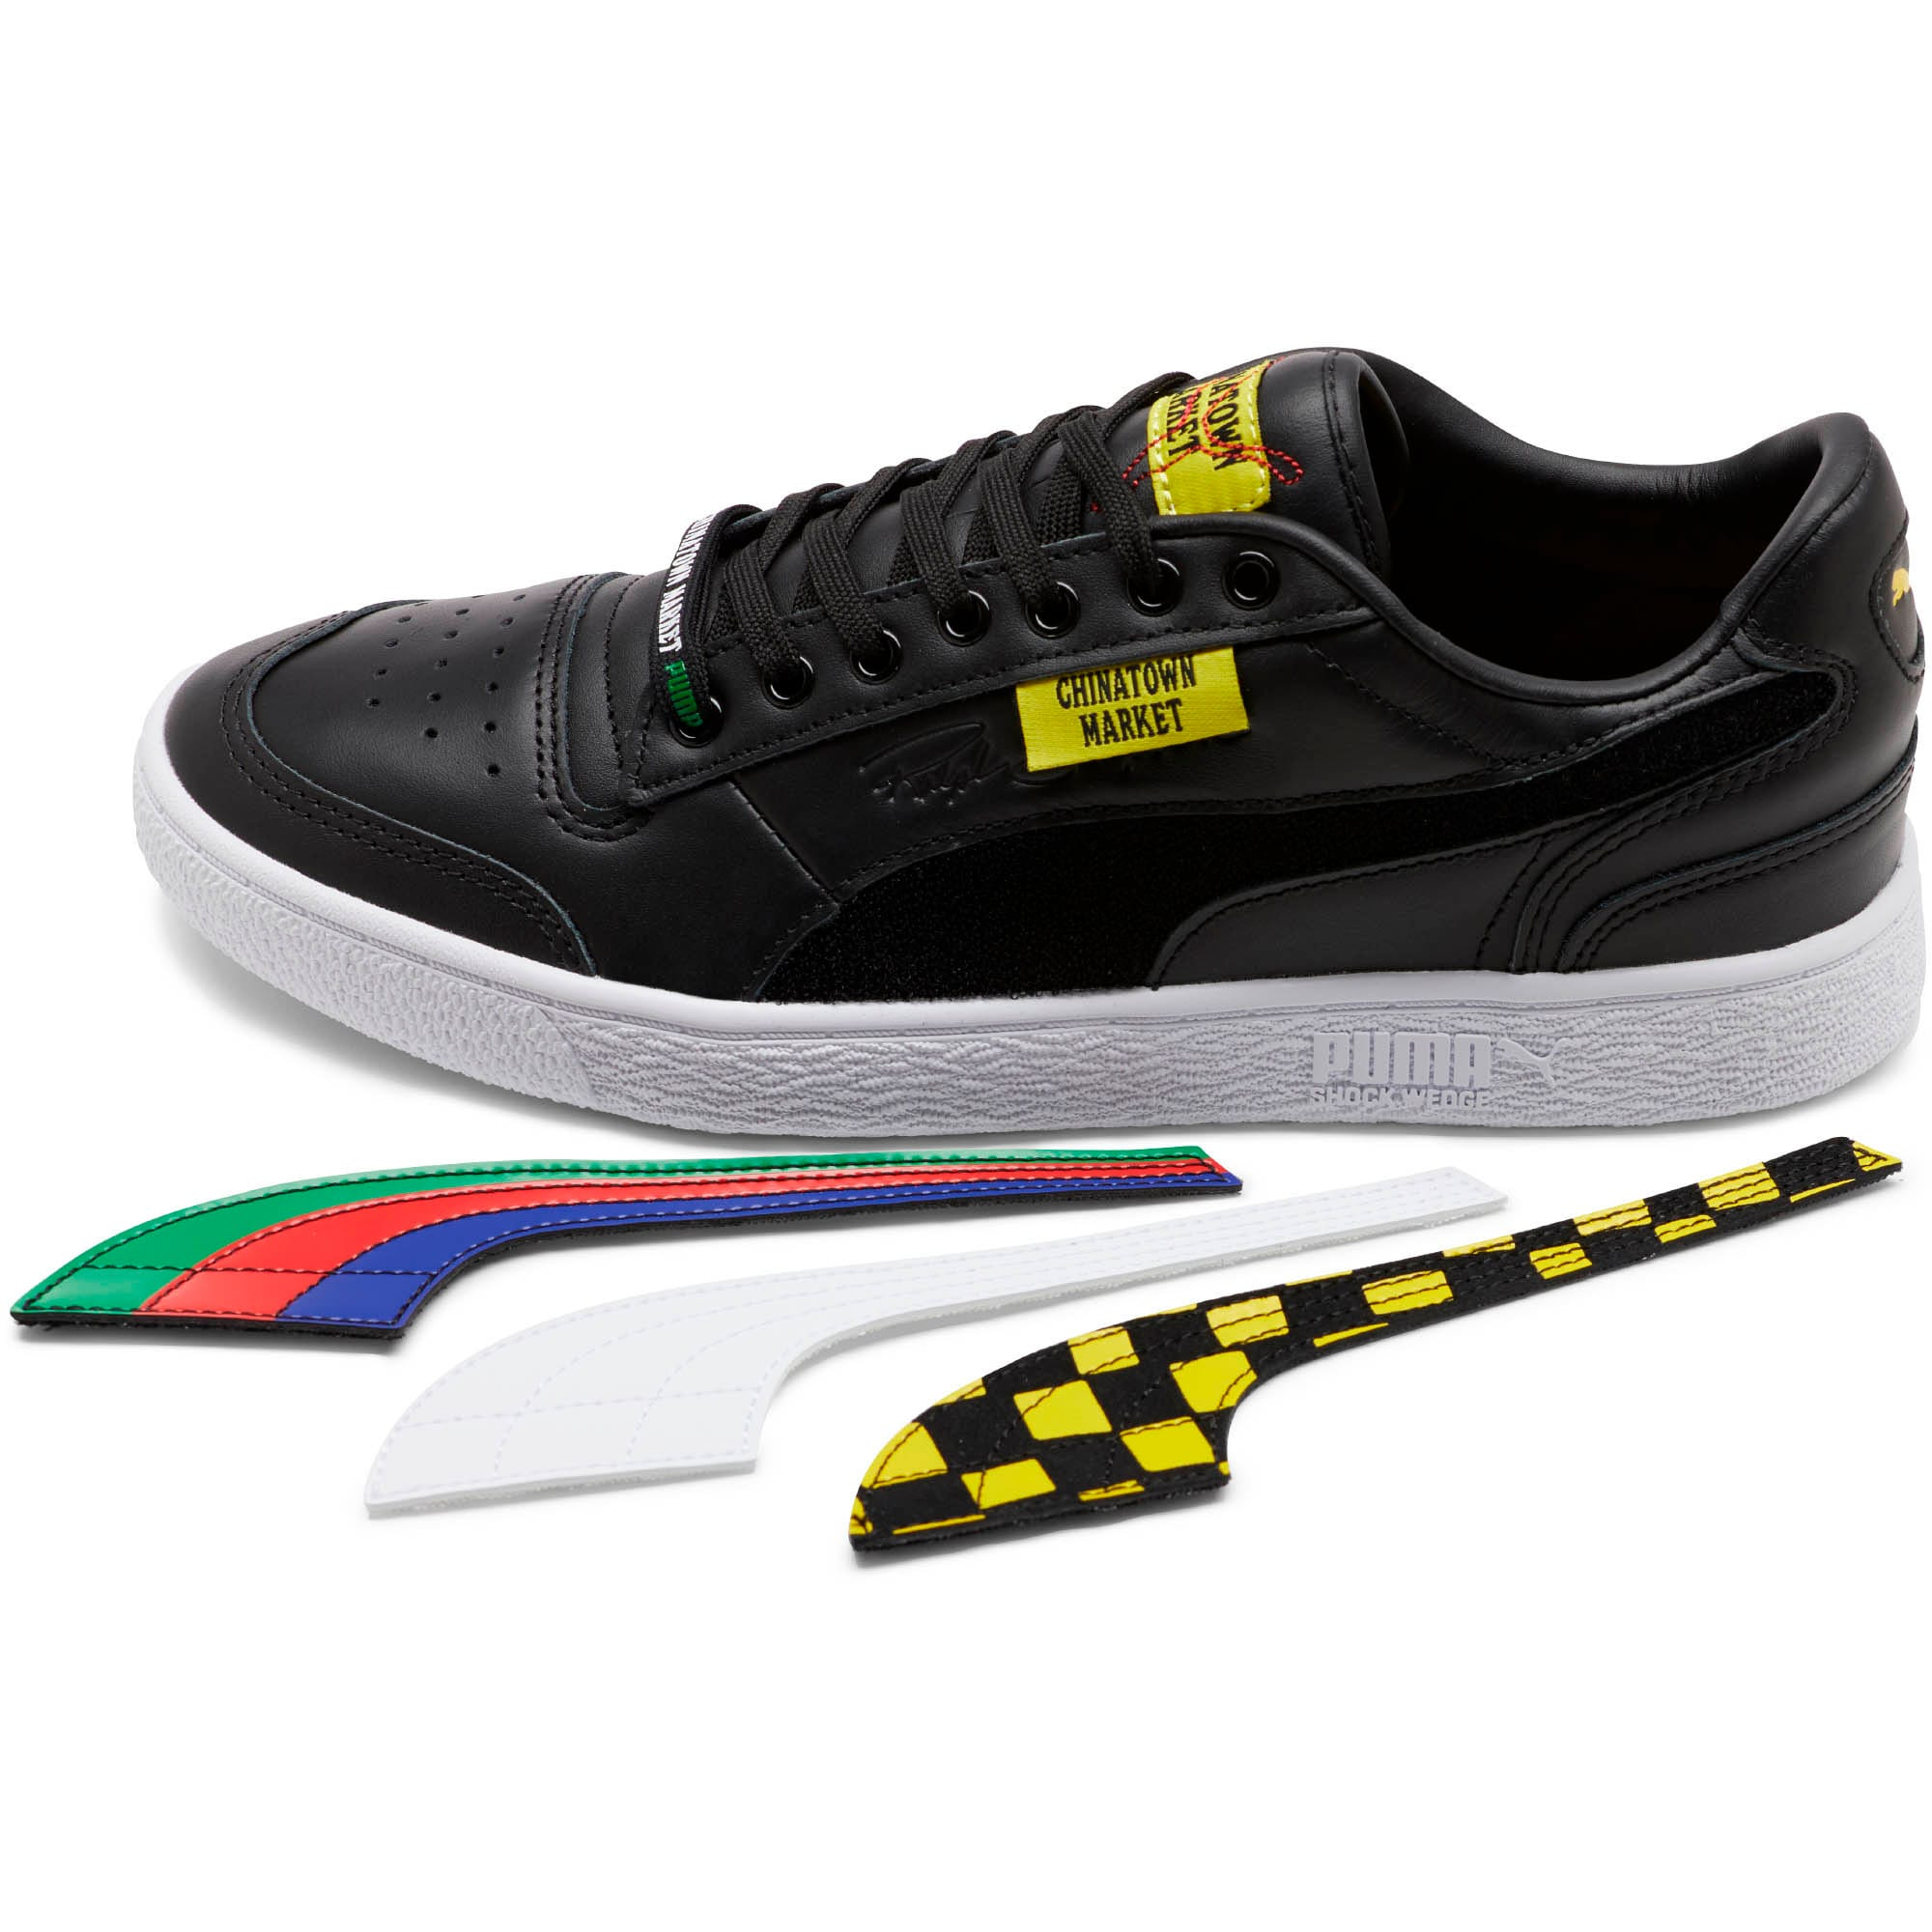 Thumbnail 1 of PUMA x CHINATOWN MARKET Ralph Sampson Lo Sneakers, Puma Black, medium